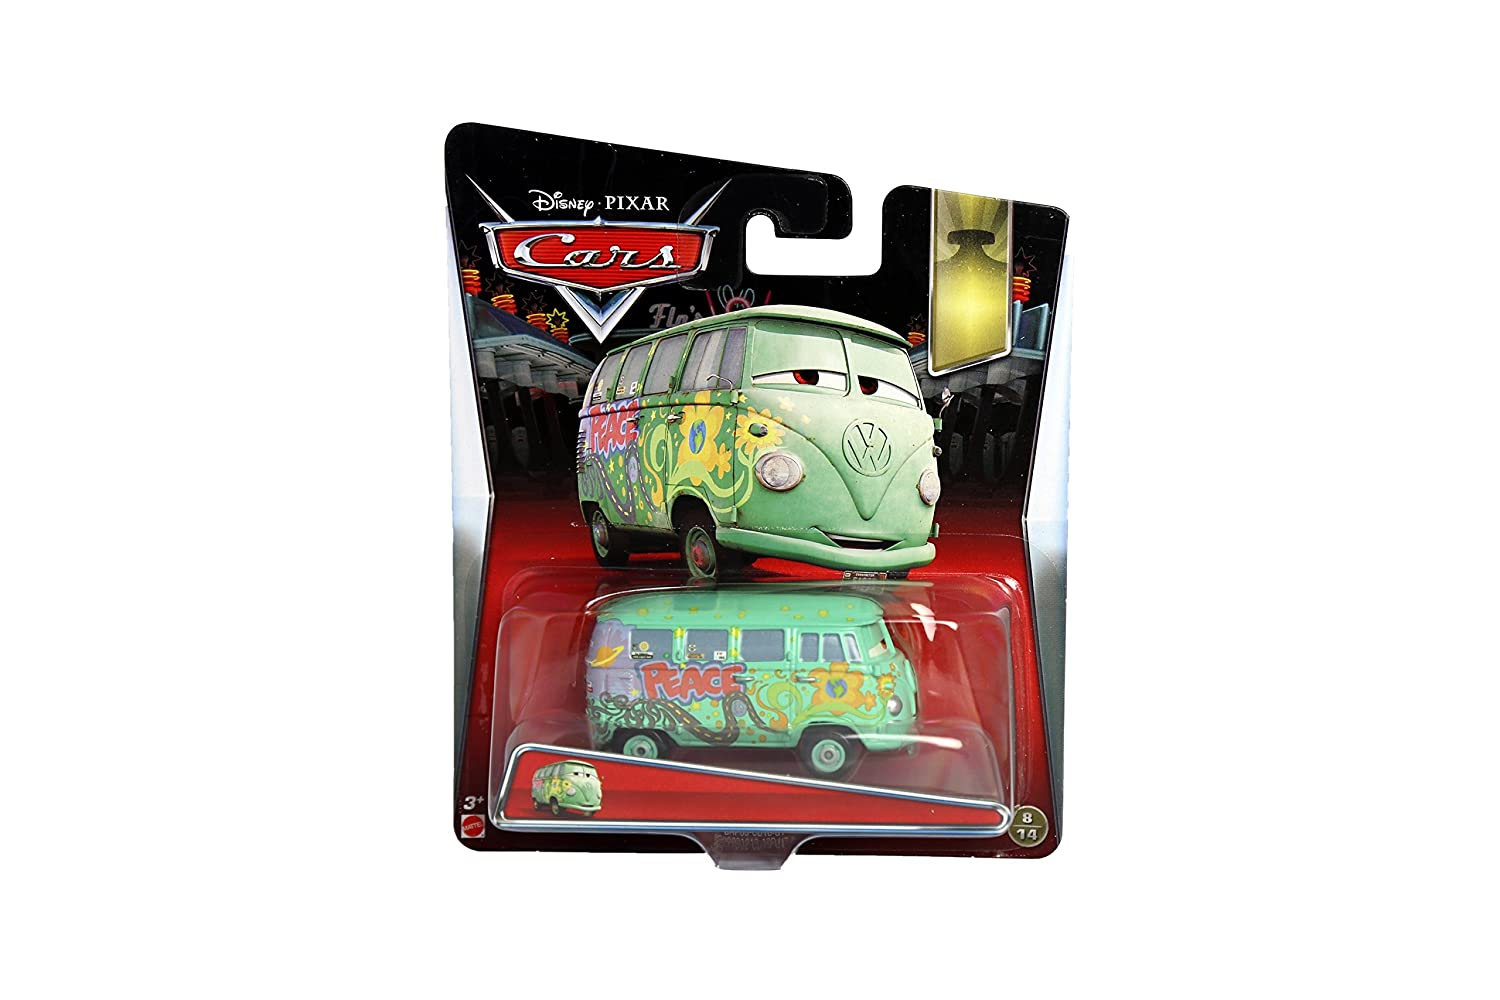 Disney//Pixar Cars Snot Rod with Flames Diecast Vehicle by Mattel